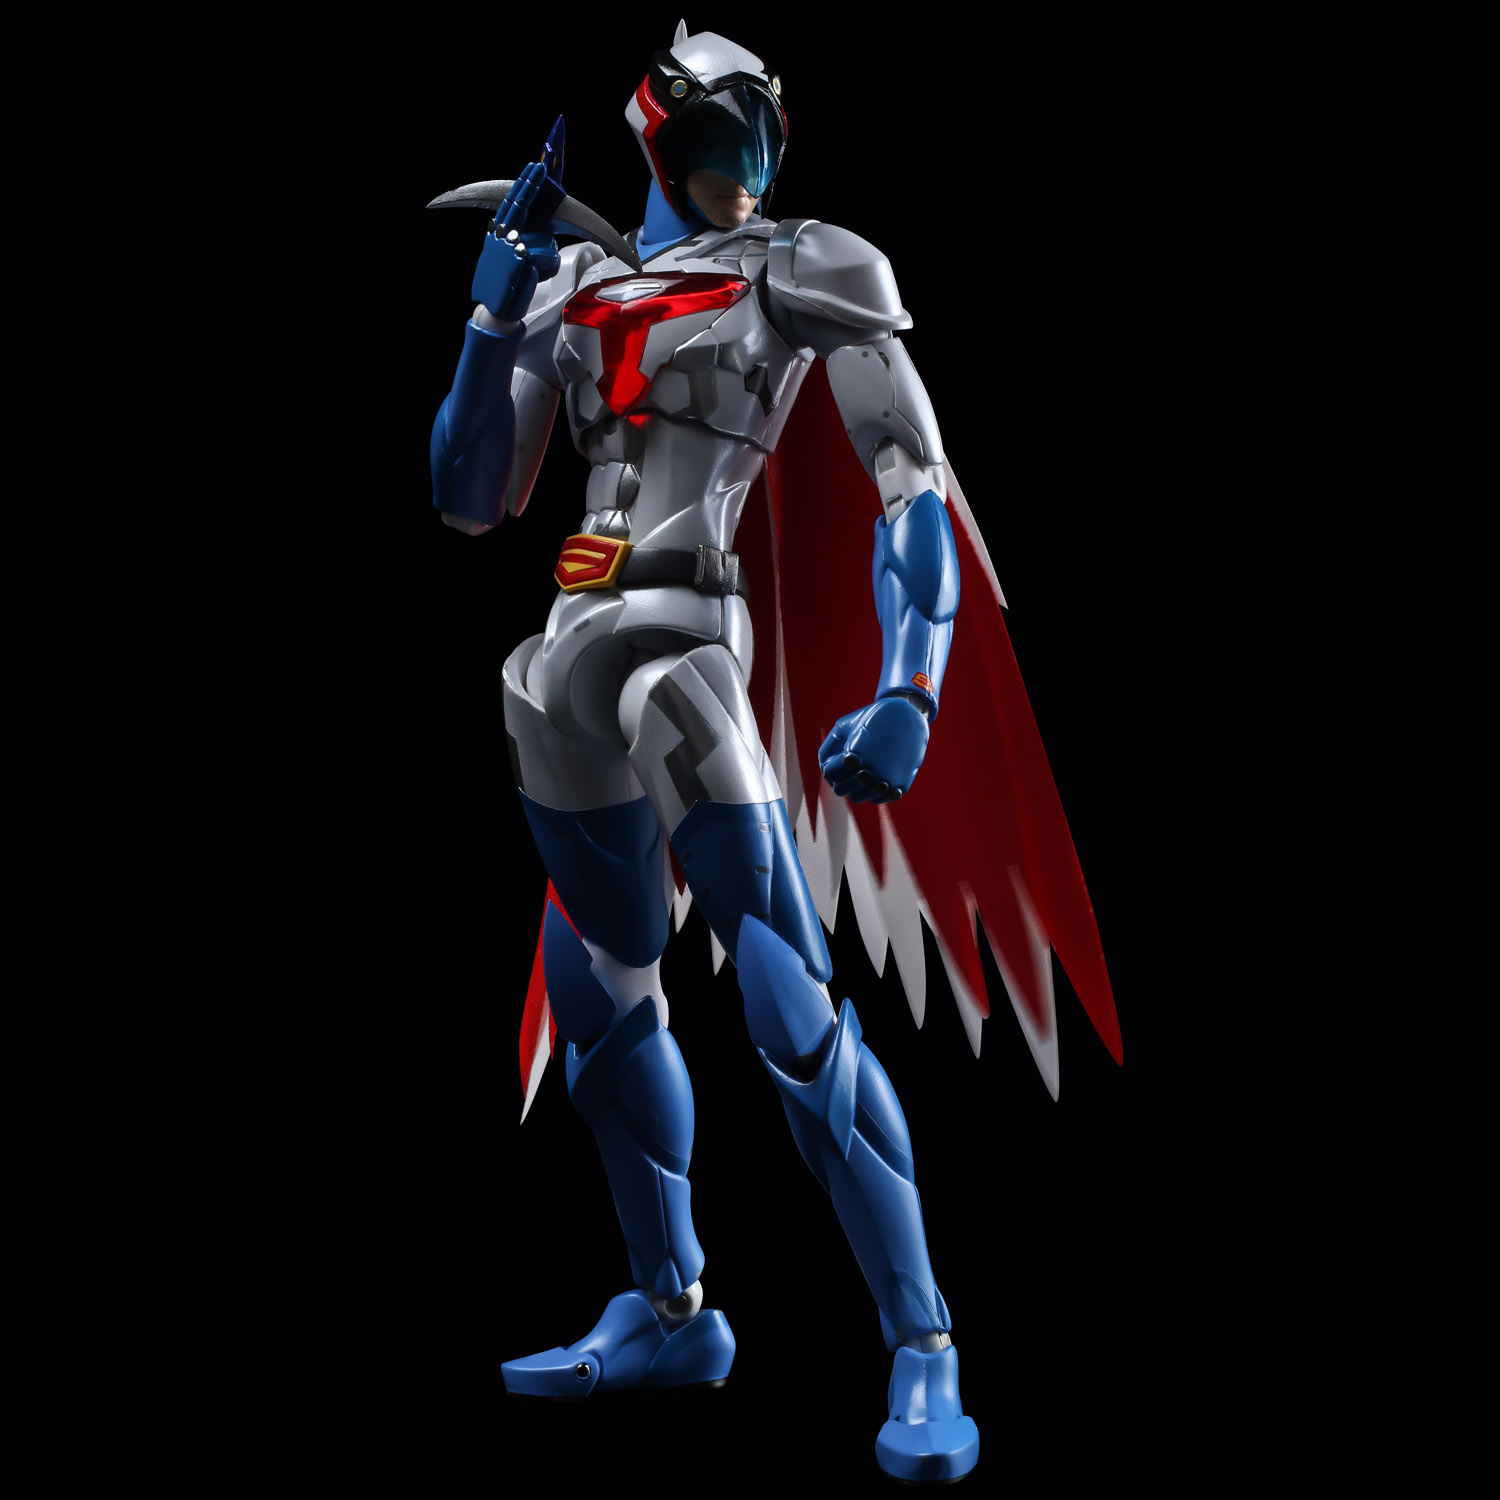 "Gatchaman Fighter Gear Ver. ""Infini-T Force"" (SEN-TI-NEL Tatsunoko Heroes Fighting Gear)"